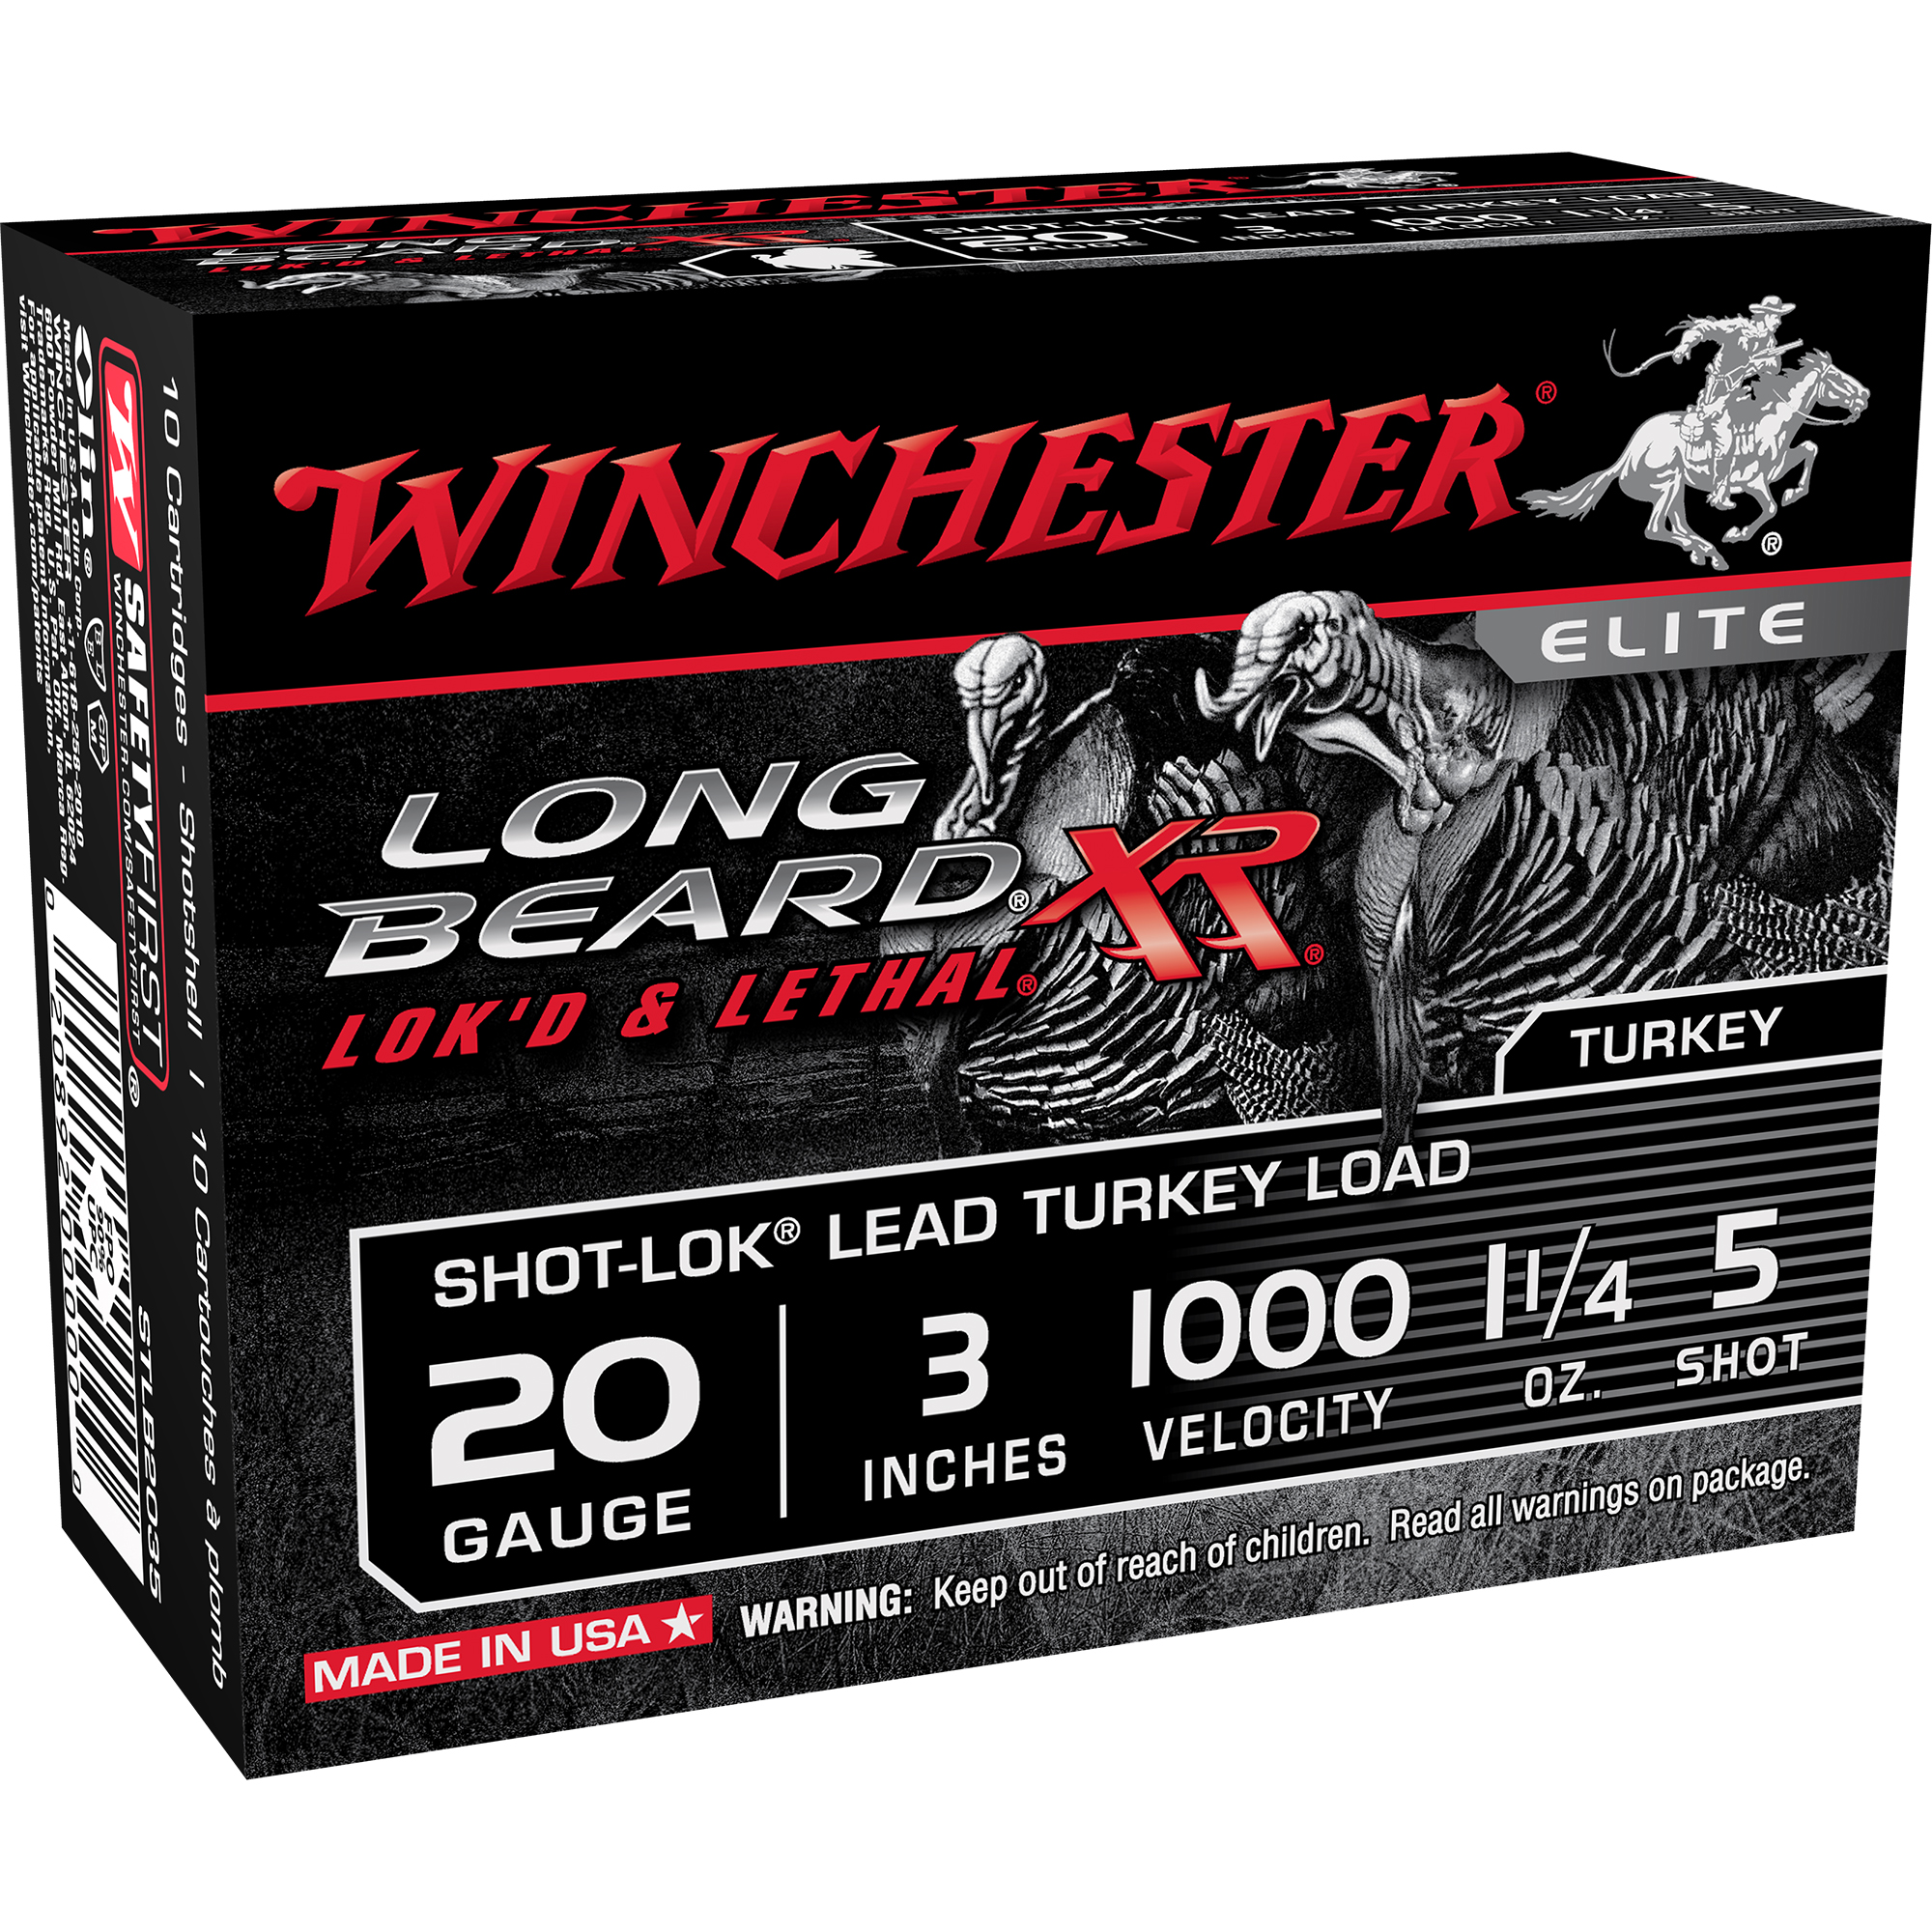 Winchester Long Beard XR Turkey Loads, 20-ga, 3″, 1-1/4 oz, #5